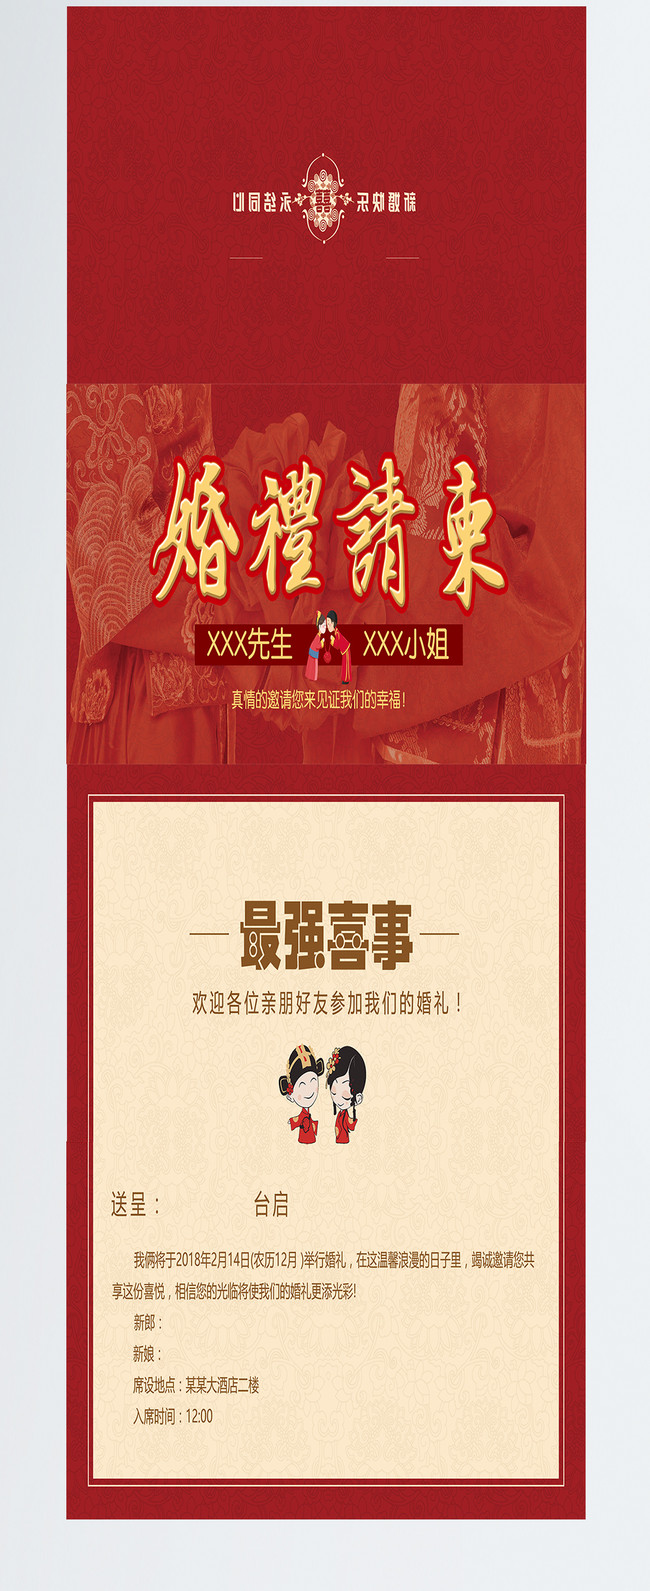 Red Chinese Wedding Invitation Card Design Template Image Picture Free Download 400802093 Lovepik Com